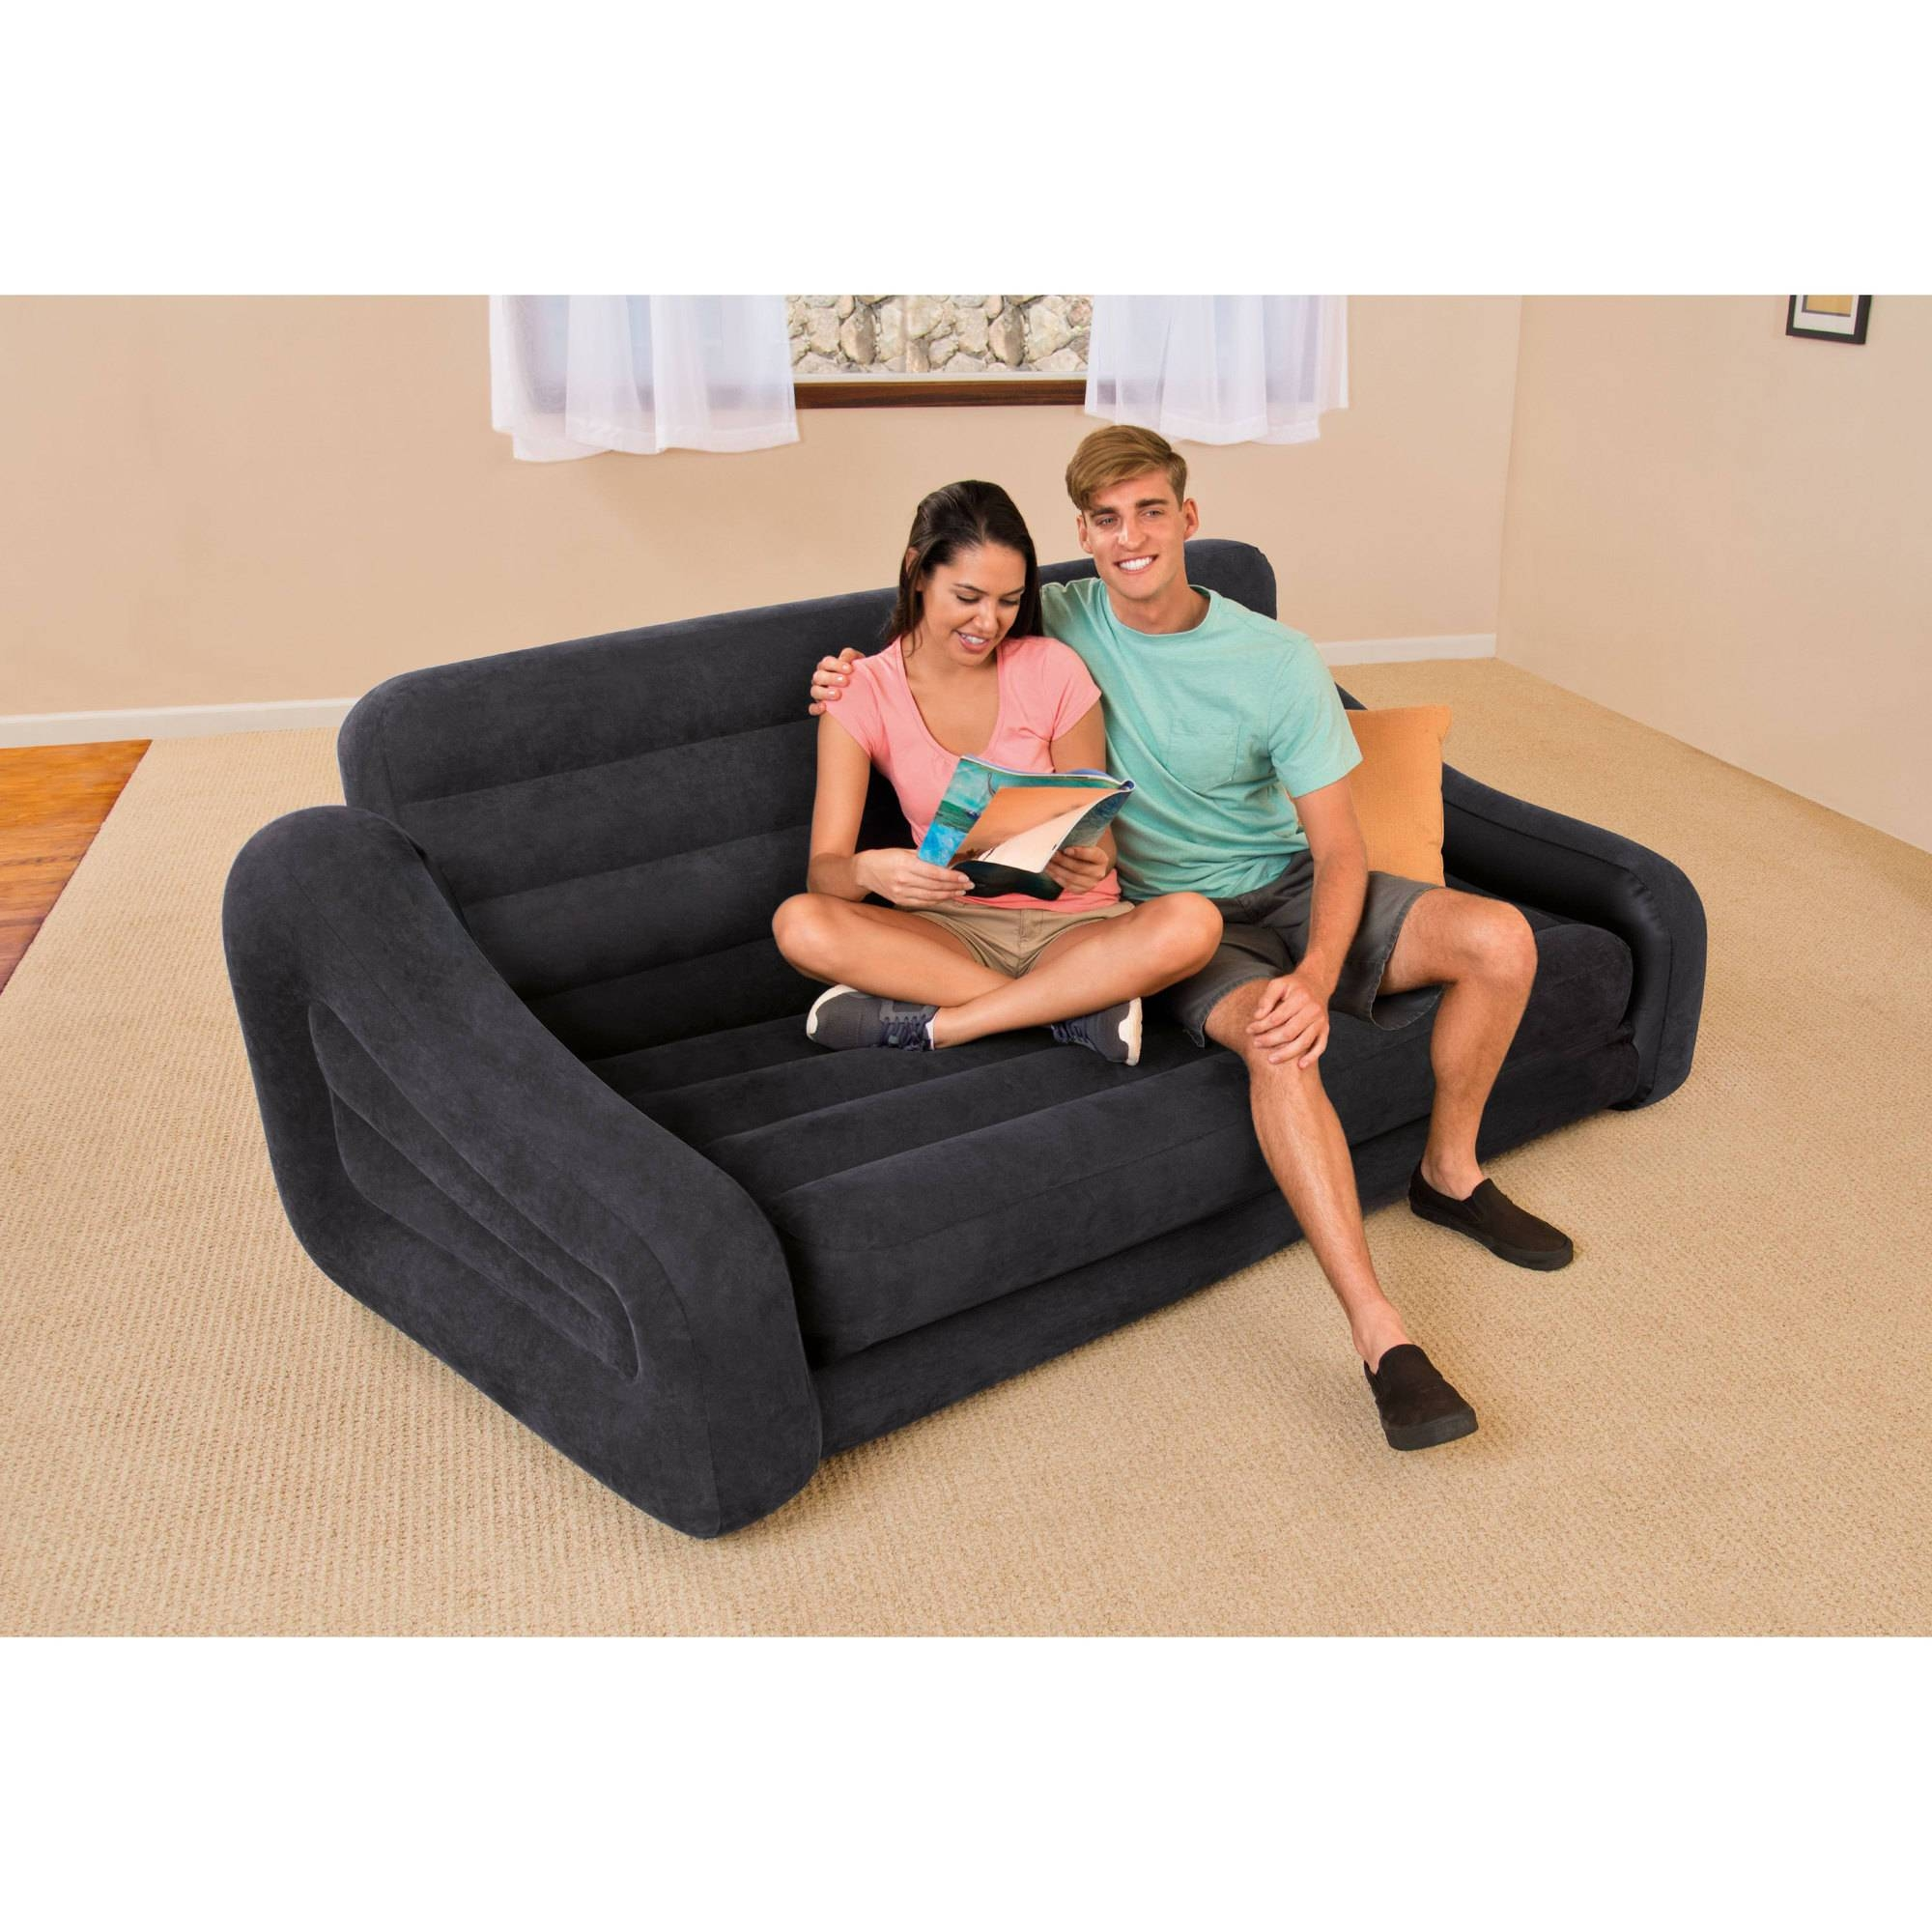 Intex Queen Inflatable Pull Out Sofa Bed - Walmart intended for Intex Pull Out Chairs (Image 11 of 15)